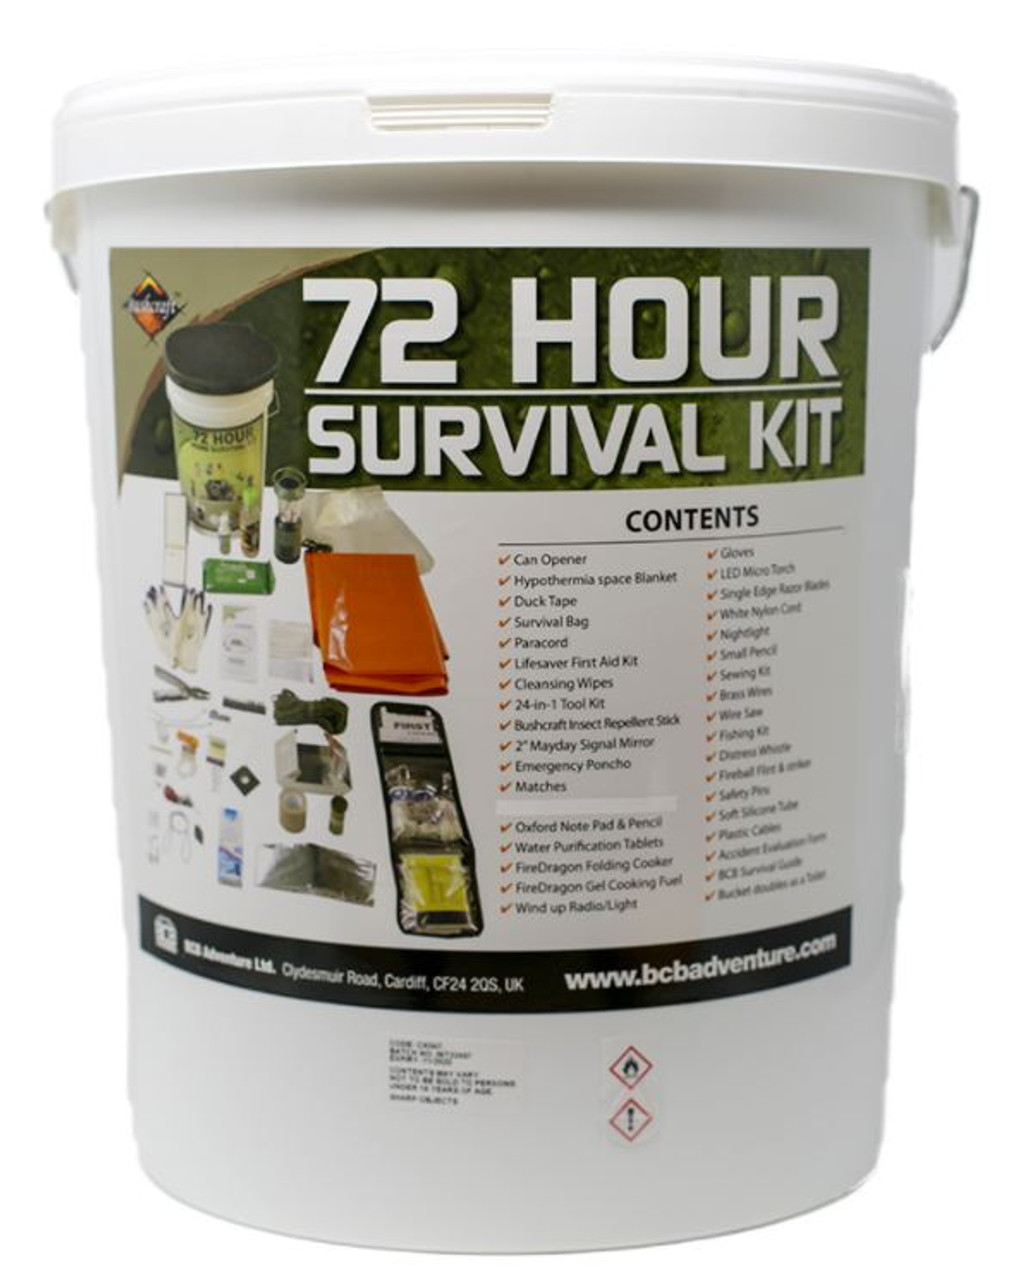 72 Hour Home Survival Kit